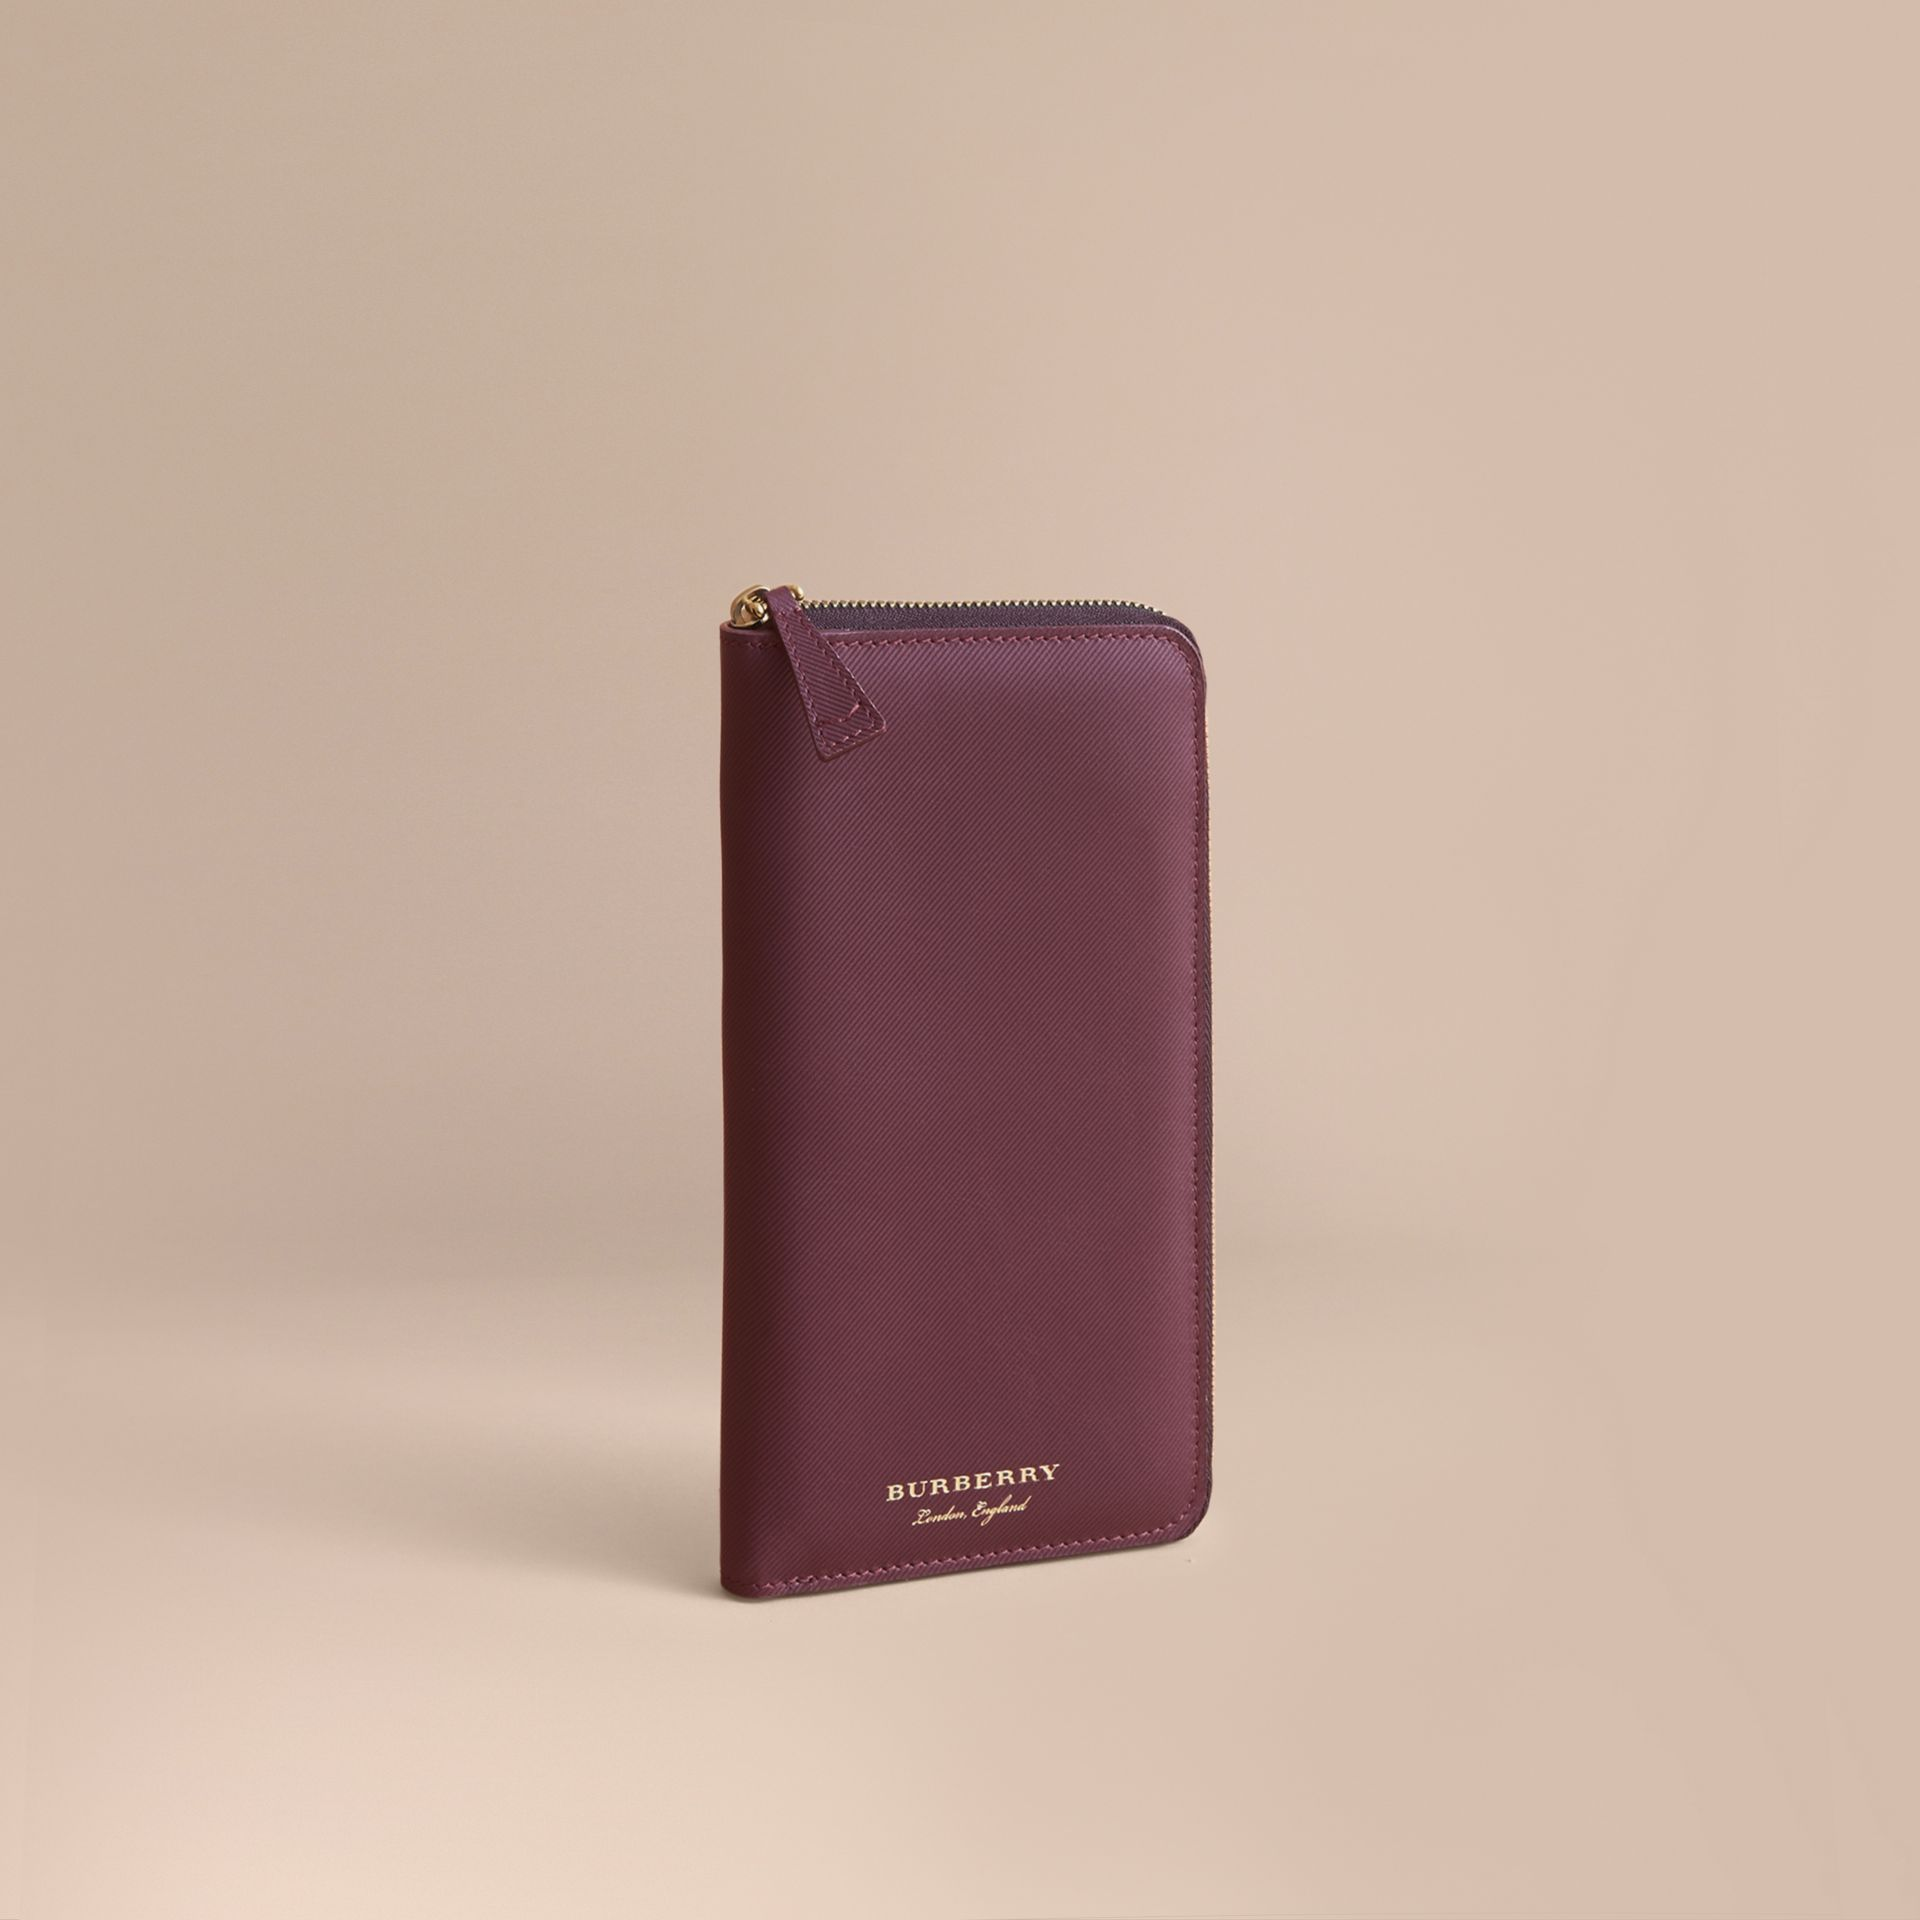 Trench Leather Ziparound Wallet in Wine - Men | Burberry - gallery image 1